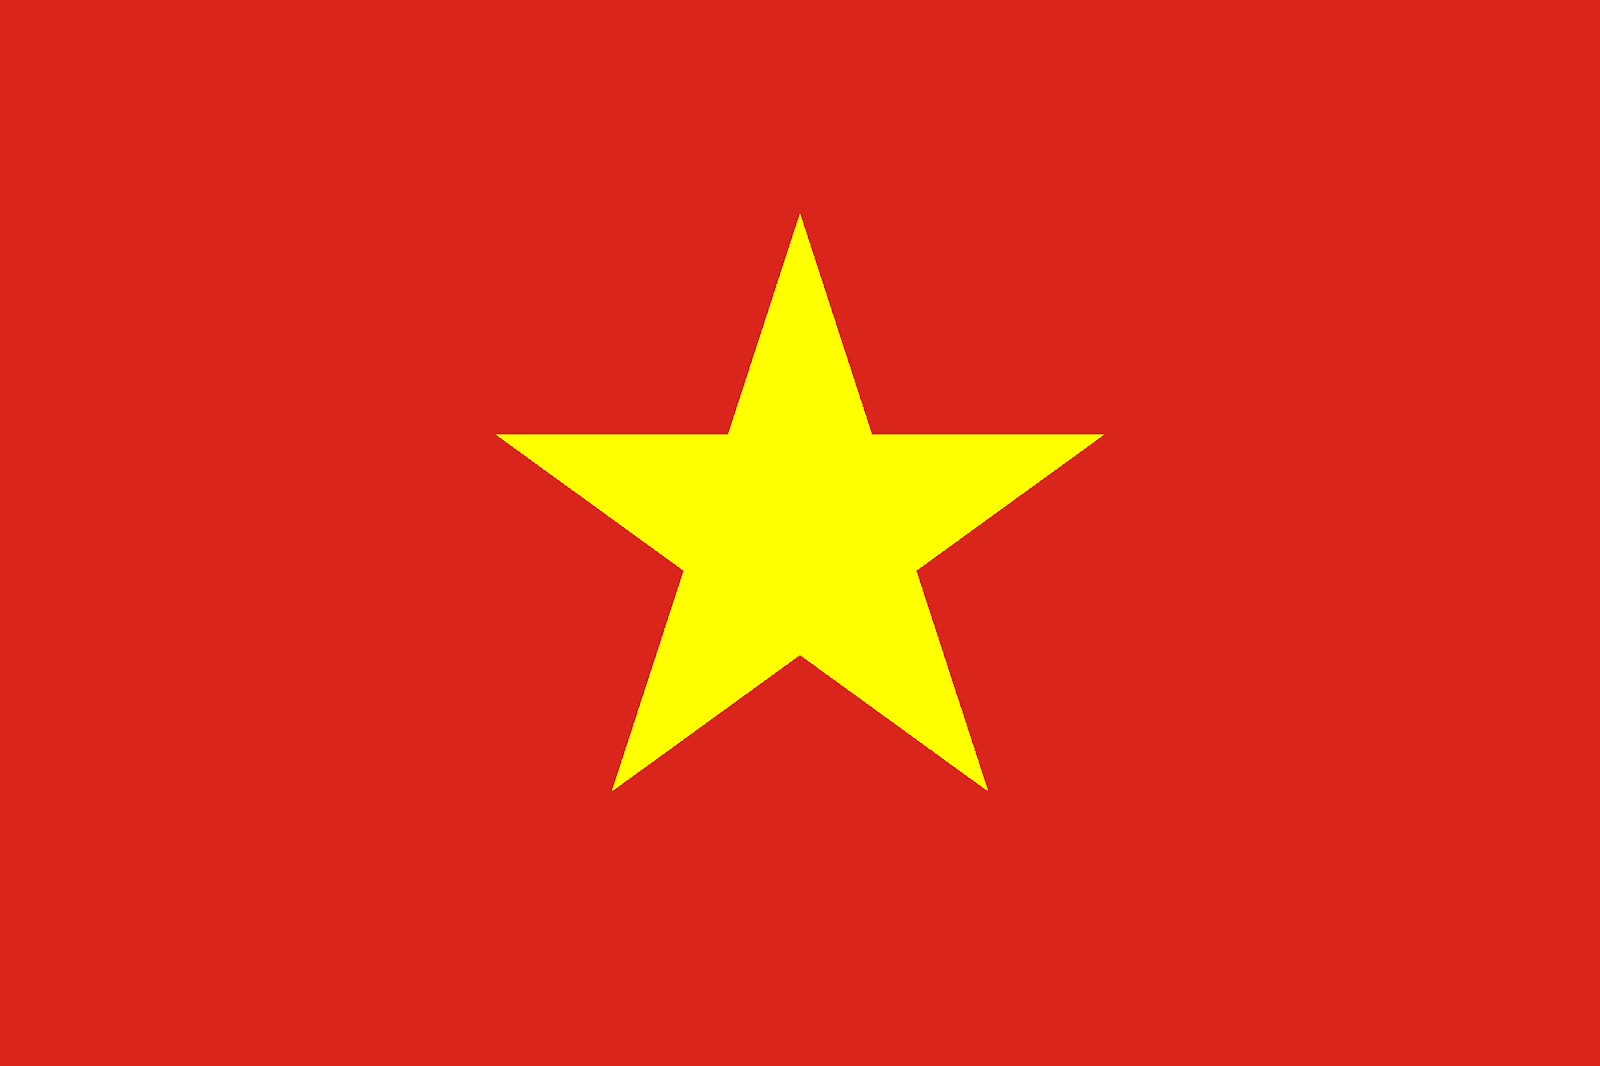 The red flag yellow star